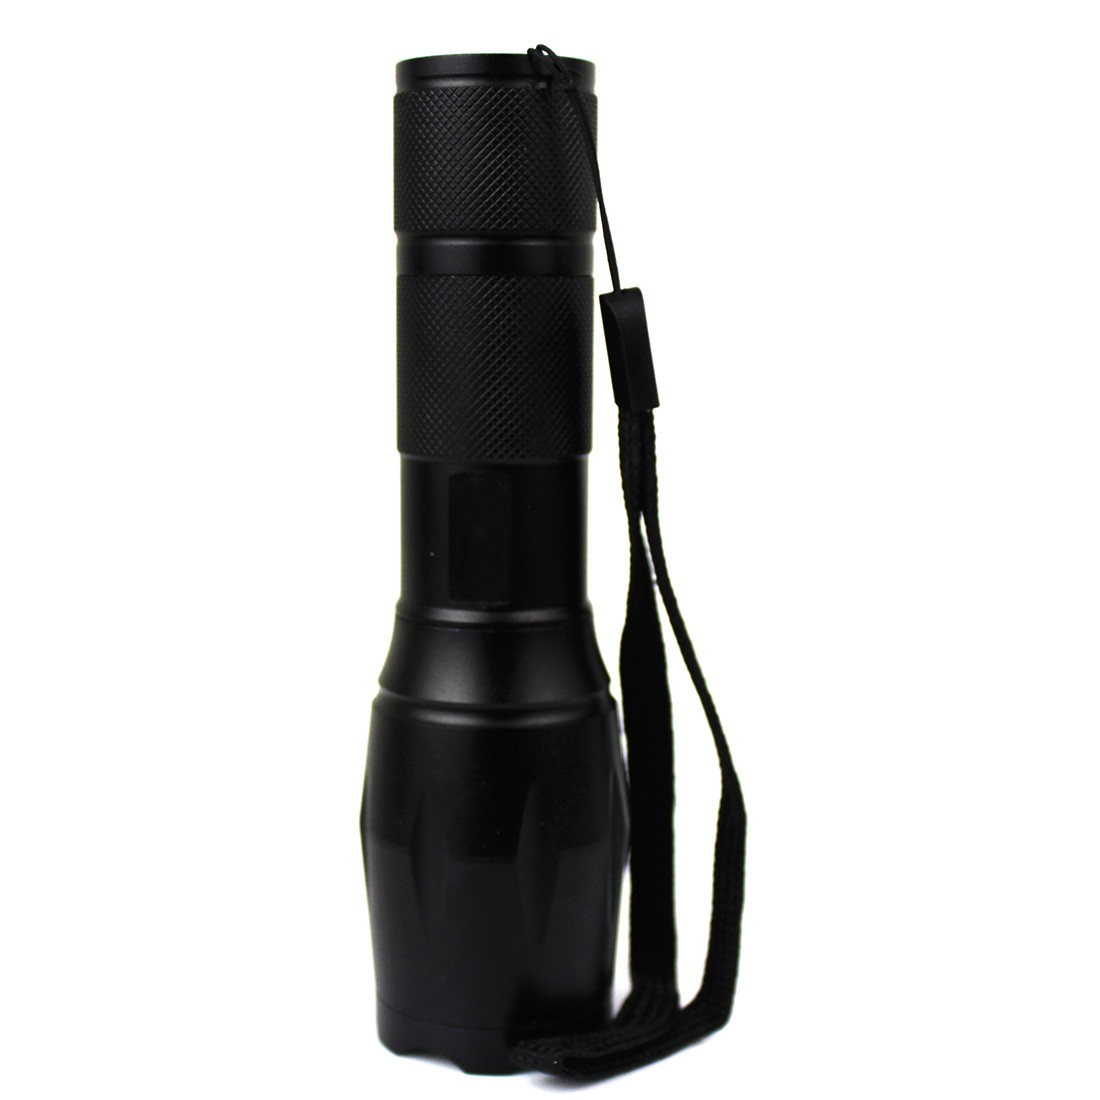 T6 2000LM Aluminum Waterproof Zoomable LED Flashlight Torch Light Torch Eu/US Charger Battery